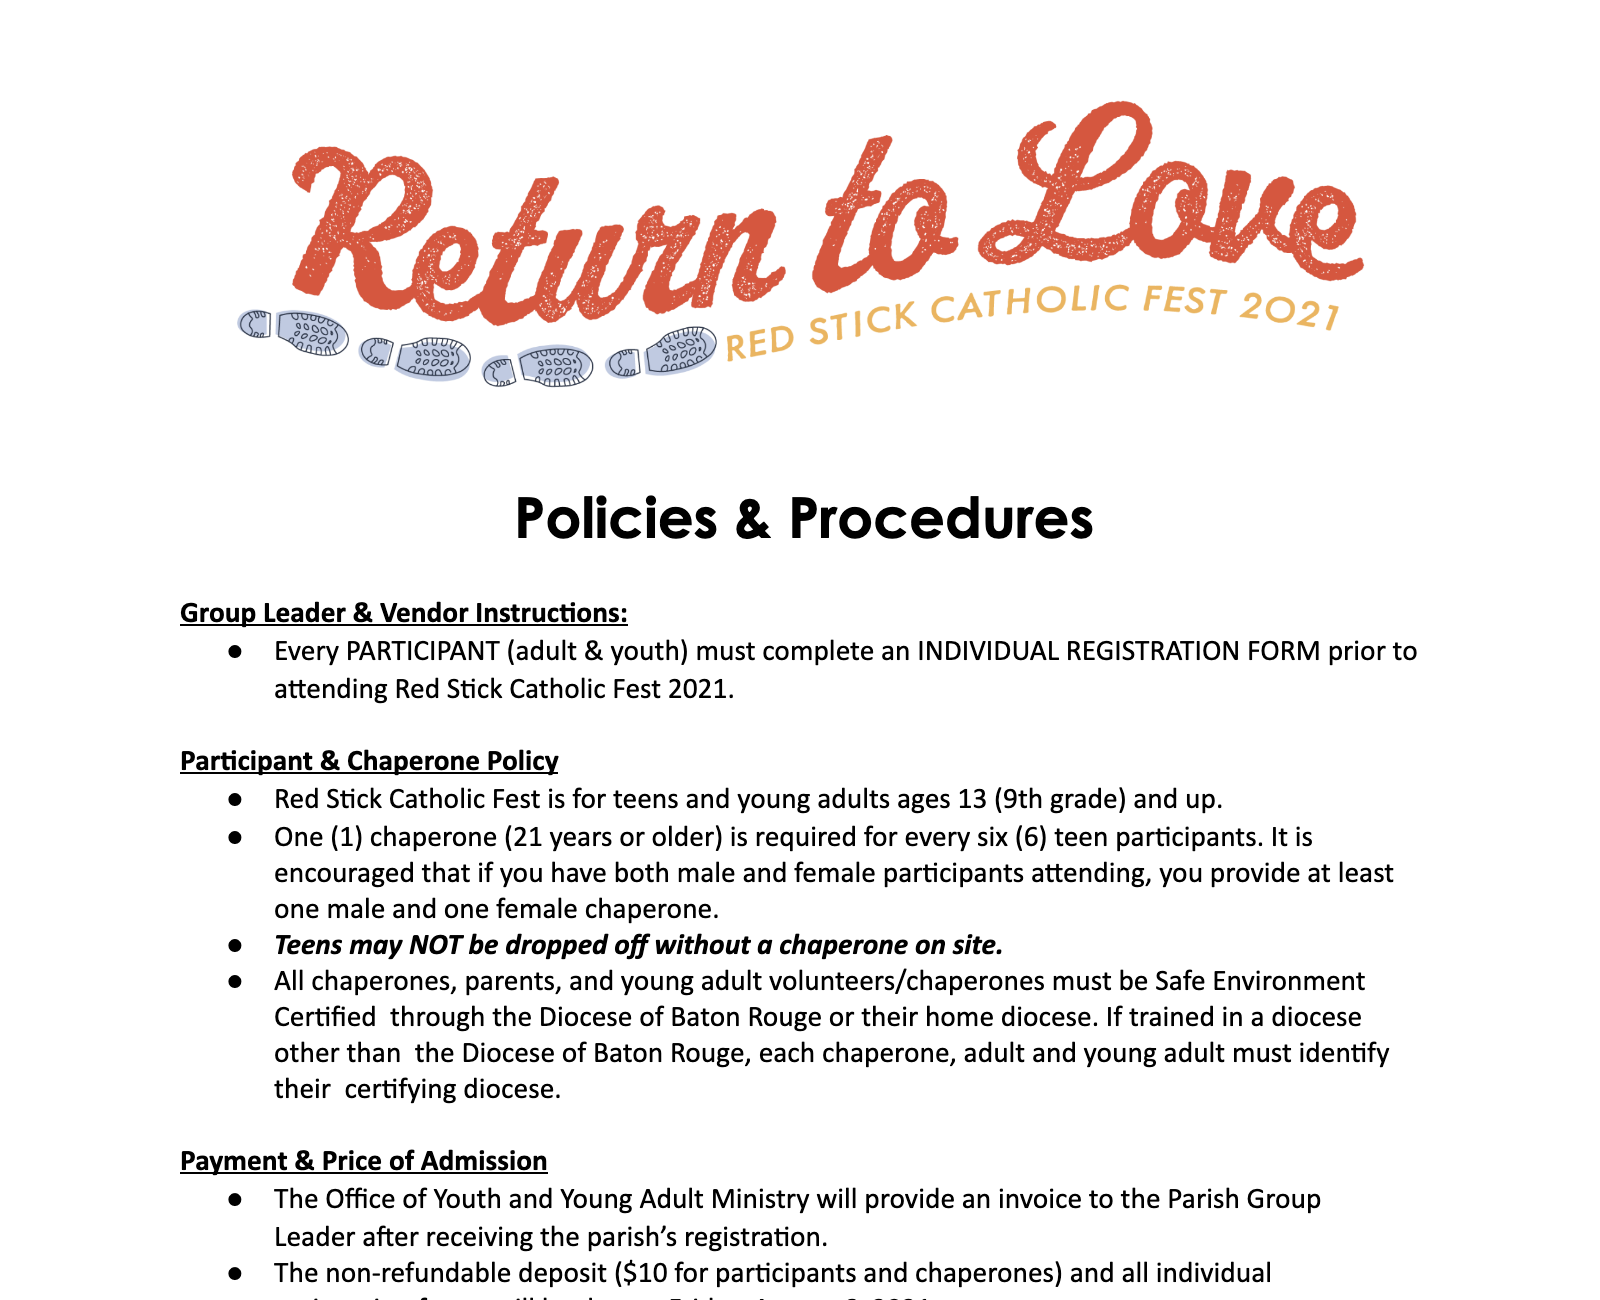 Red Stick Catholic Fest Policies and Procedures